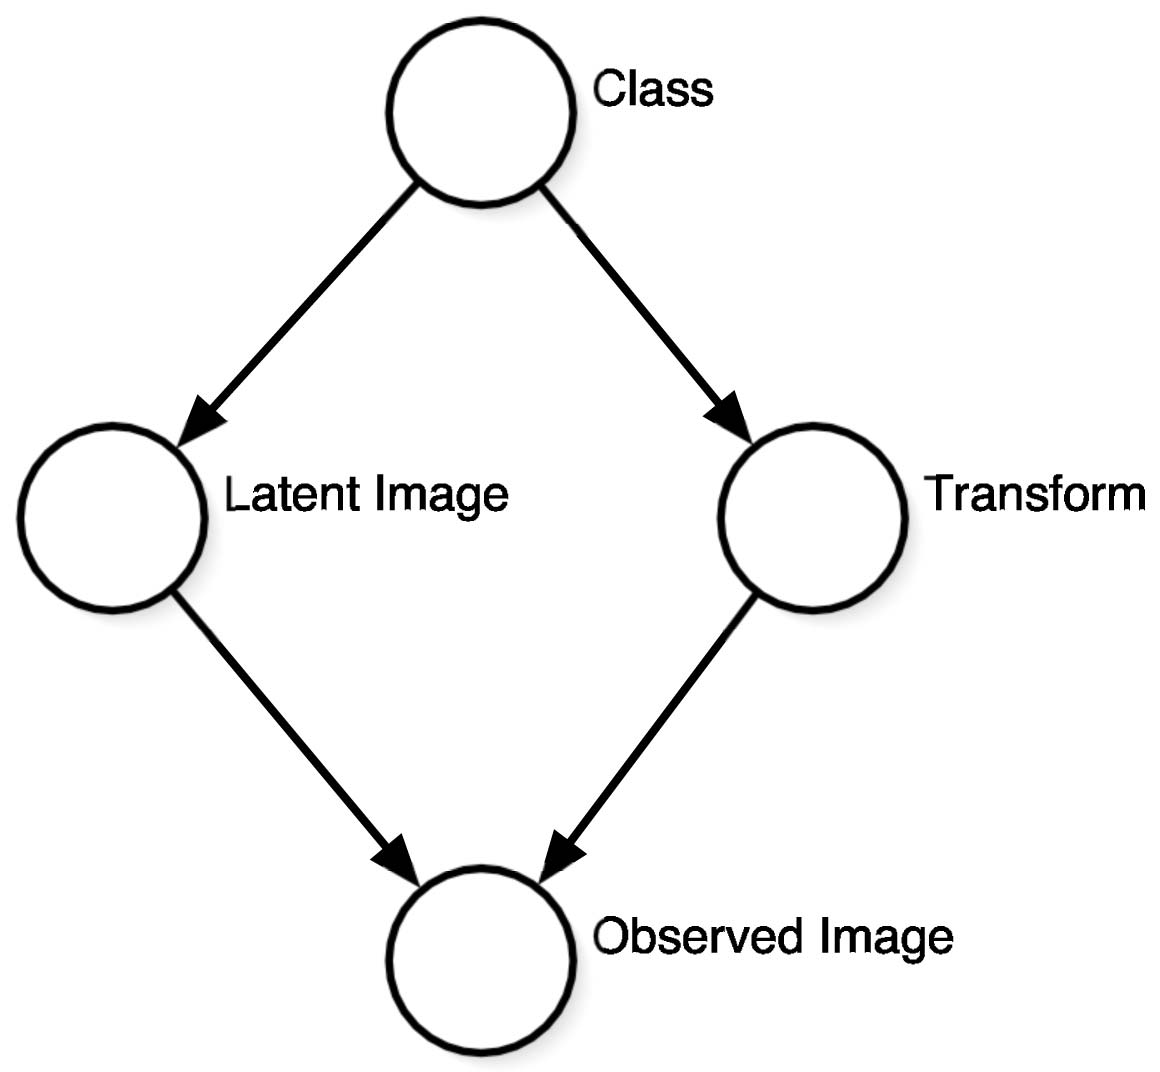 LEARNED-MILLER: DATA DRIVEN IMAGE MODELS THROUGH CONTINUOUS JOINT ALIGNMENT 241 Fig. 5. A directed graphical model representing a general generative image model.